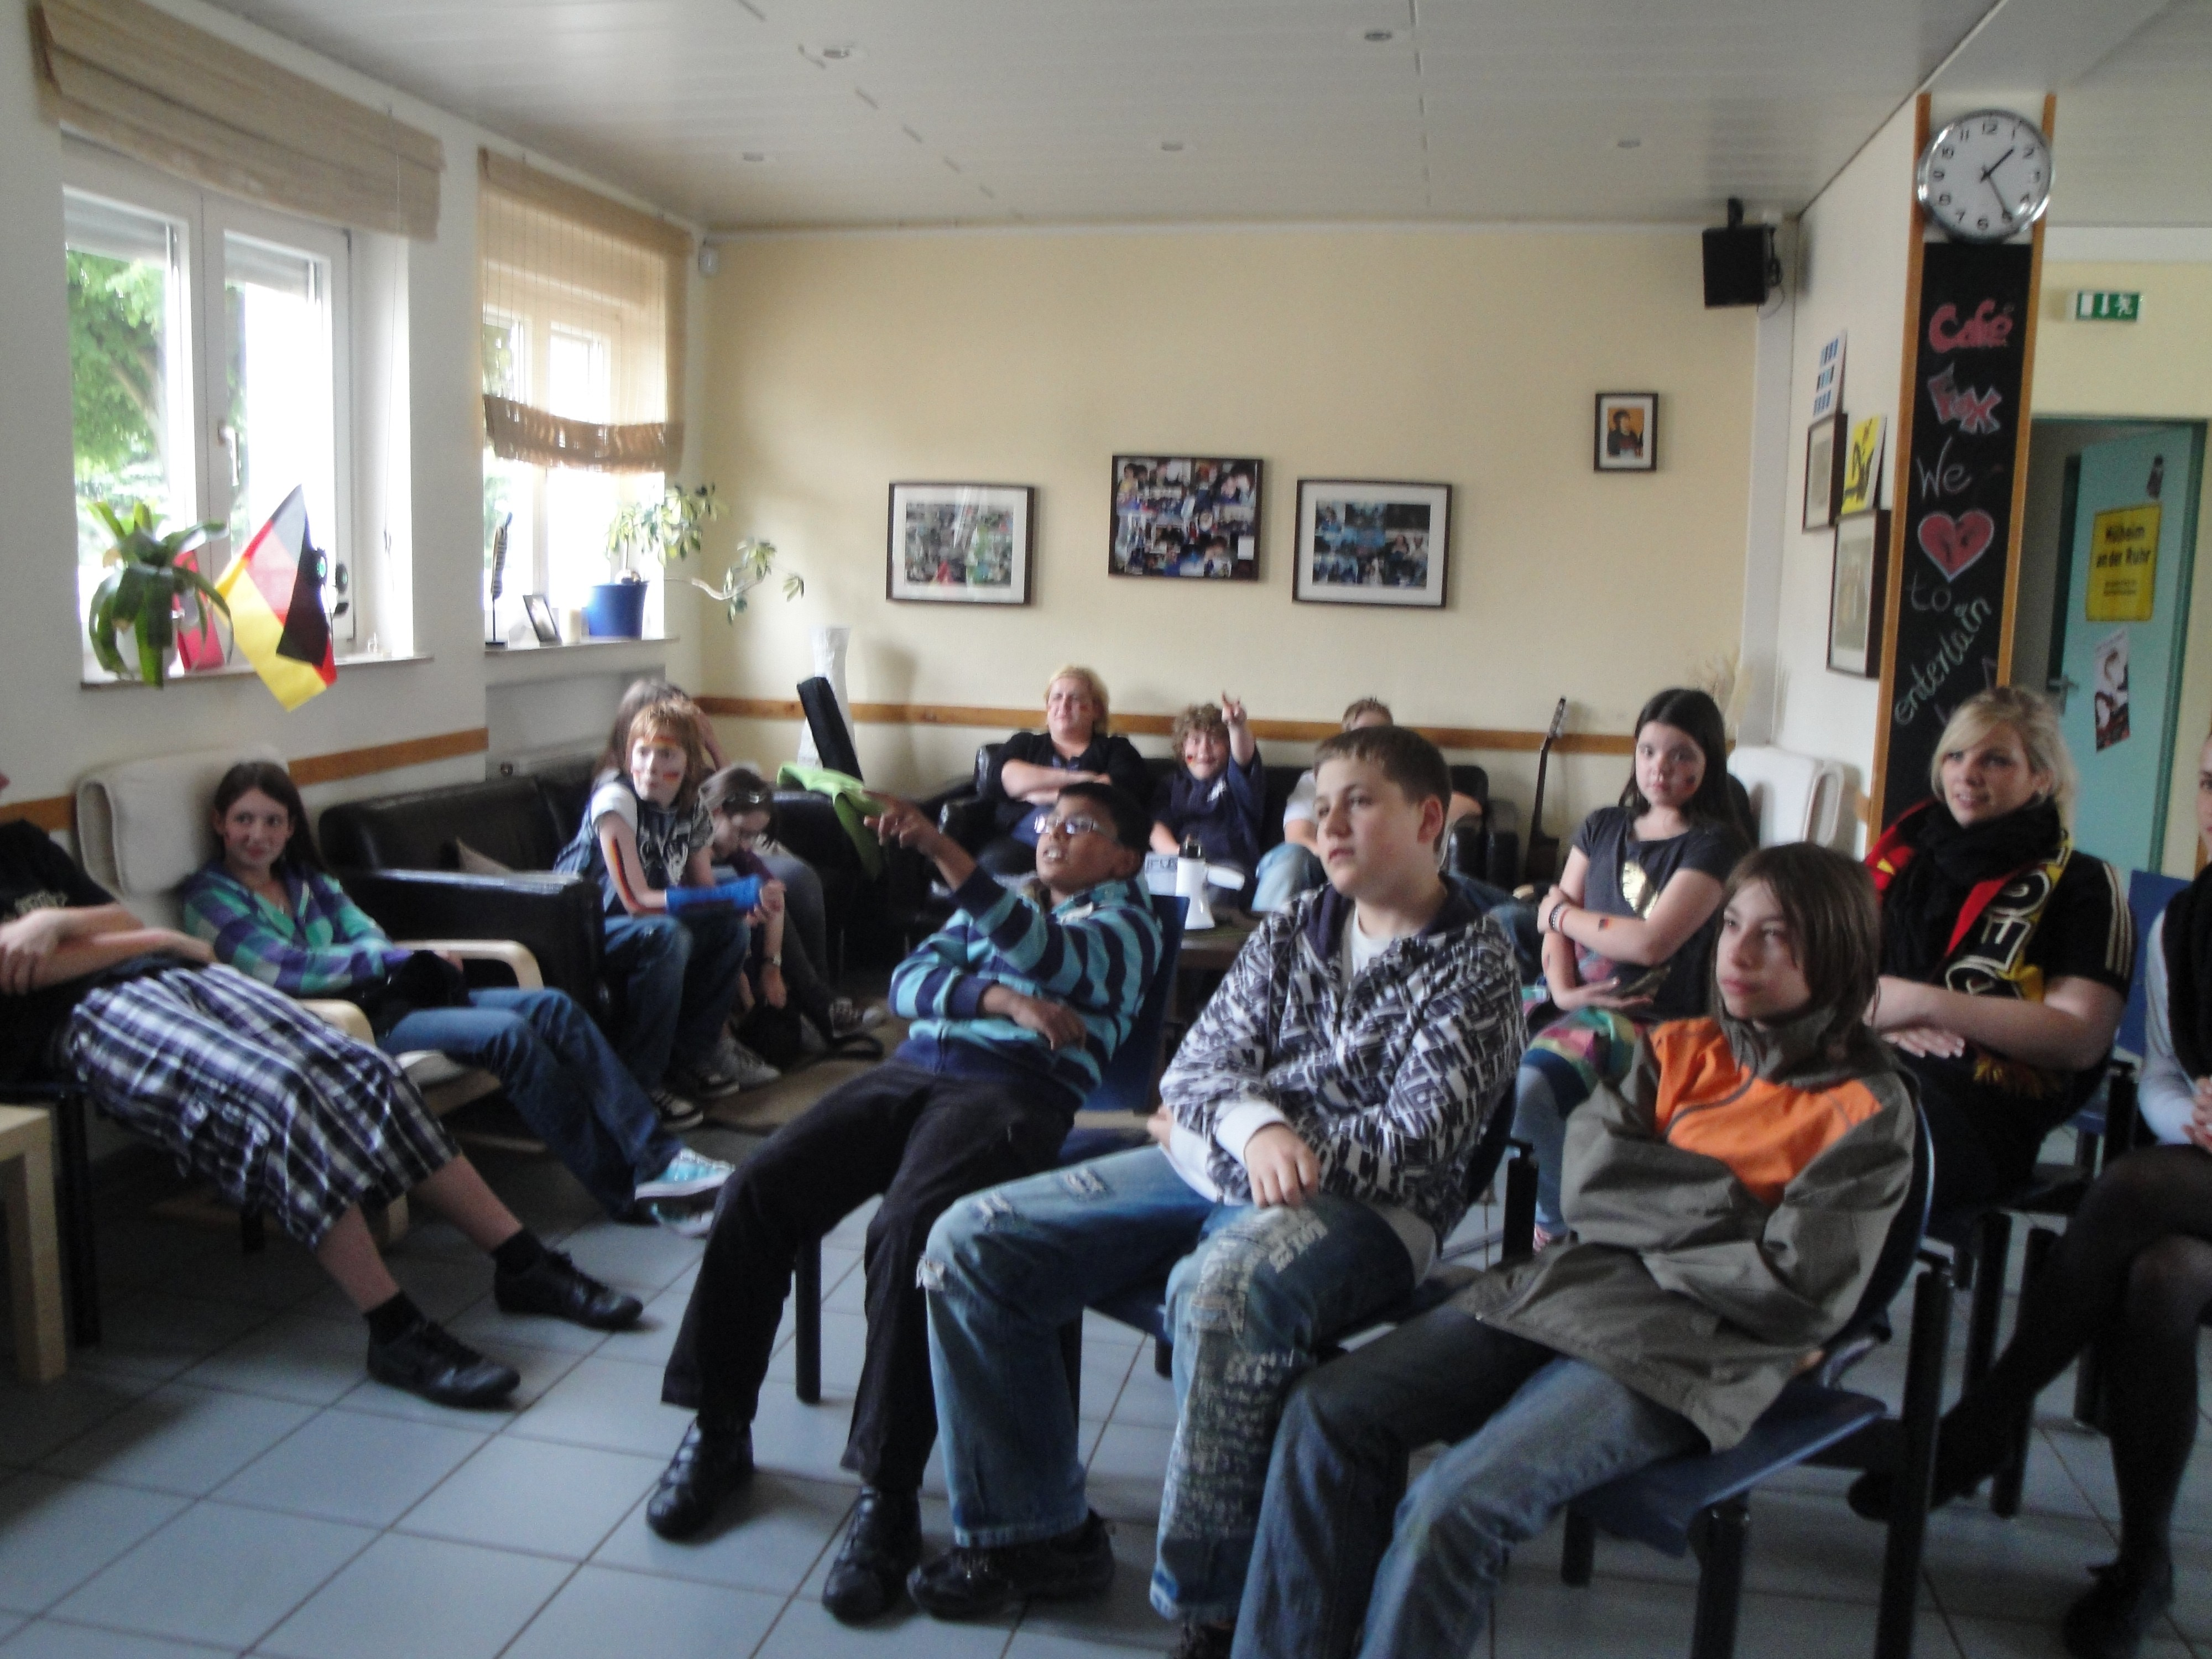 Jugendzentrum Café Fox WM Public Viewing